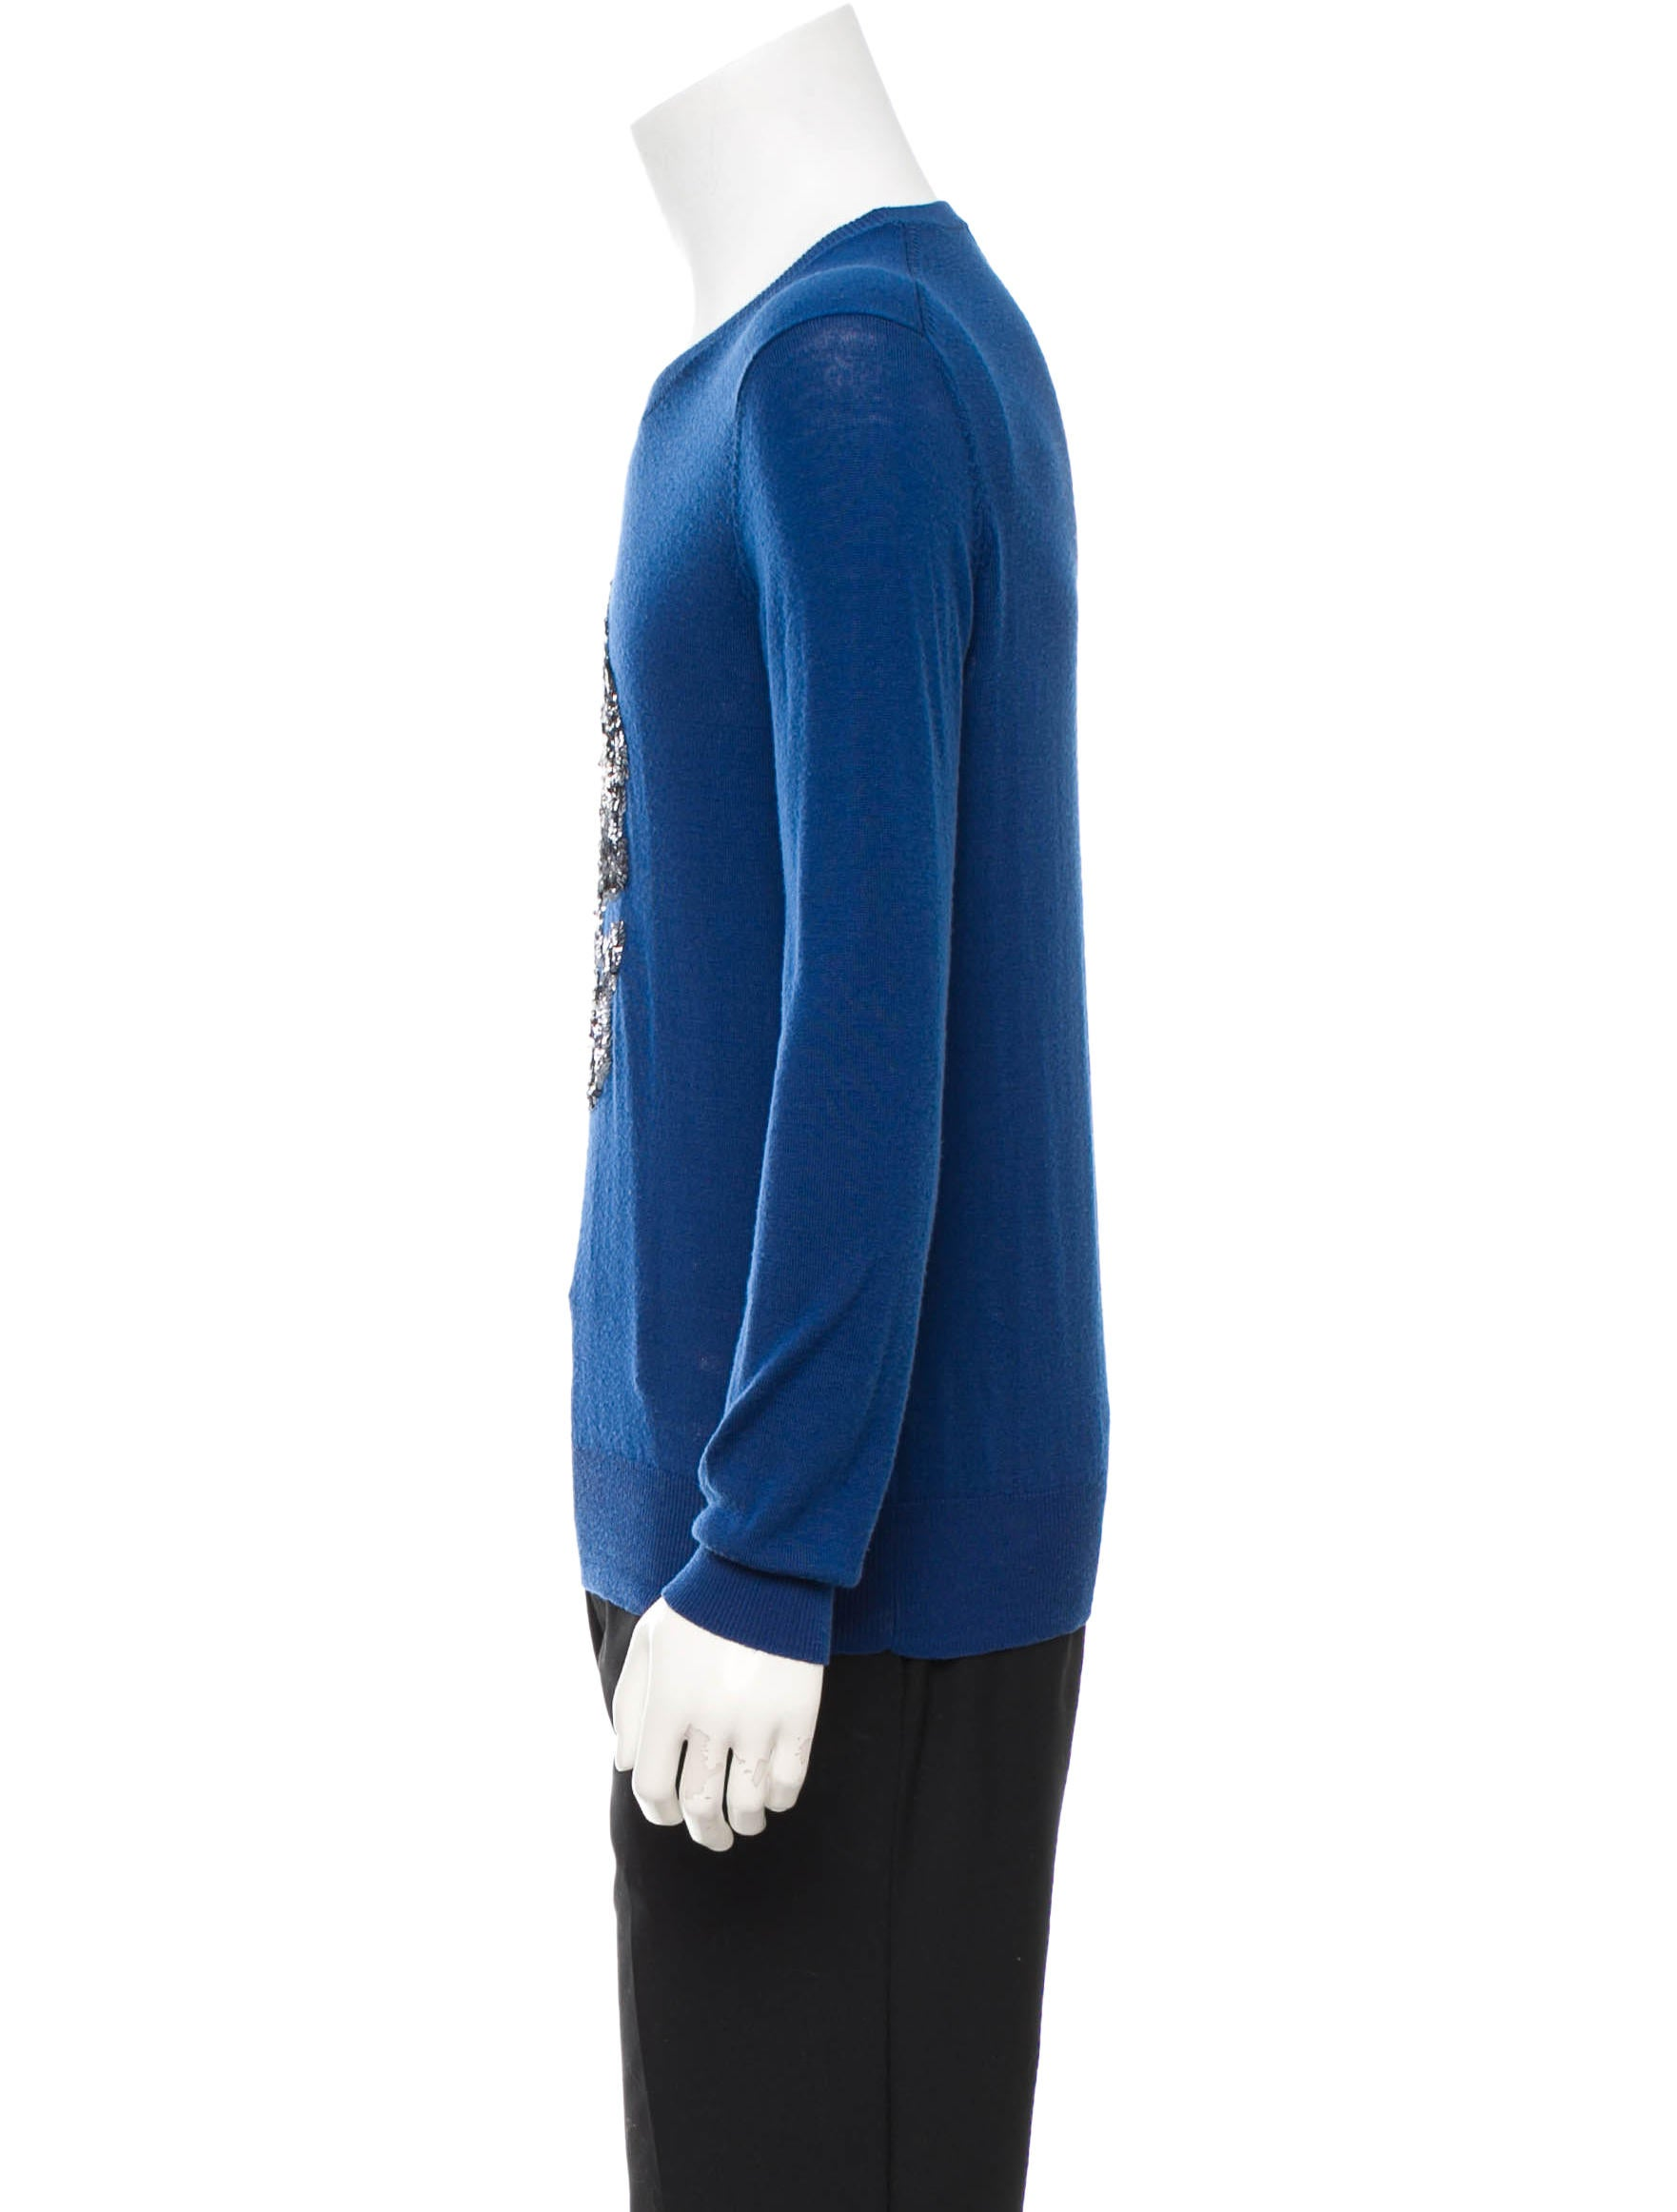 Women's Merino Wool V-Neck Pullover Sweater. from $ 93 45 Prime. out of 5 stars 4. Pendleton. Women's Timeless Merino Wool Turtleneck Sweater. from $ 60 57 Prime. out of 5 stars 4. Icebreaker Merino. Everyday Base Layer Long Sleeve Crew Neck Shirt, New Zealand Merino Wool. from $ 34 95 Prime.